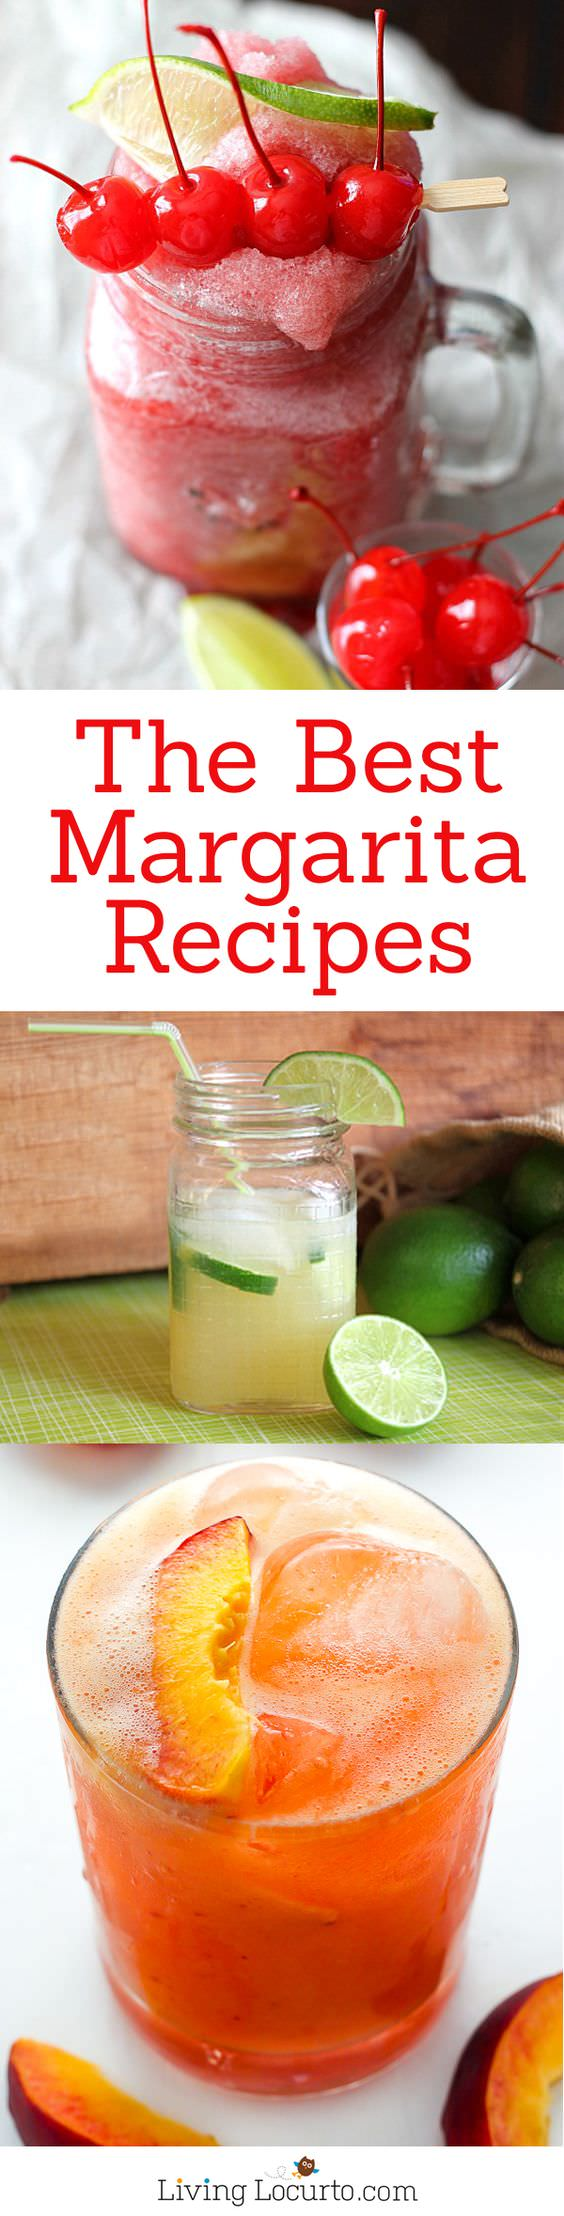 Some of the best Margarita Recipes ever and you'll love them this summer! From Strawberry and Blackberry to Pineapple and Coconut. Check out!